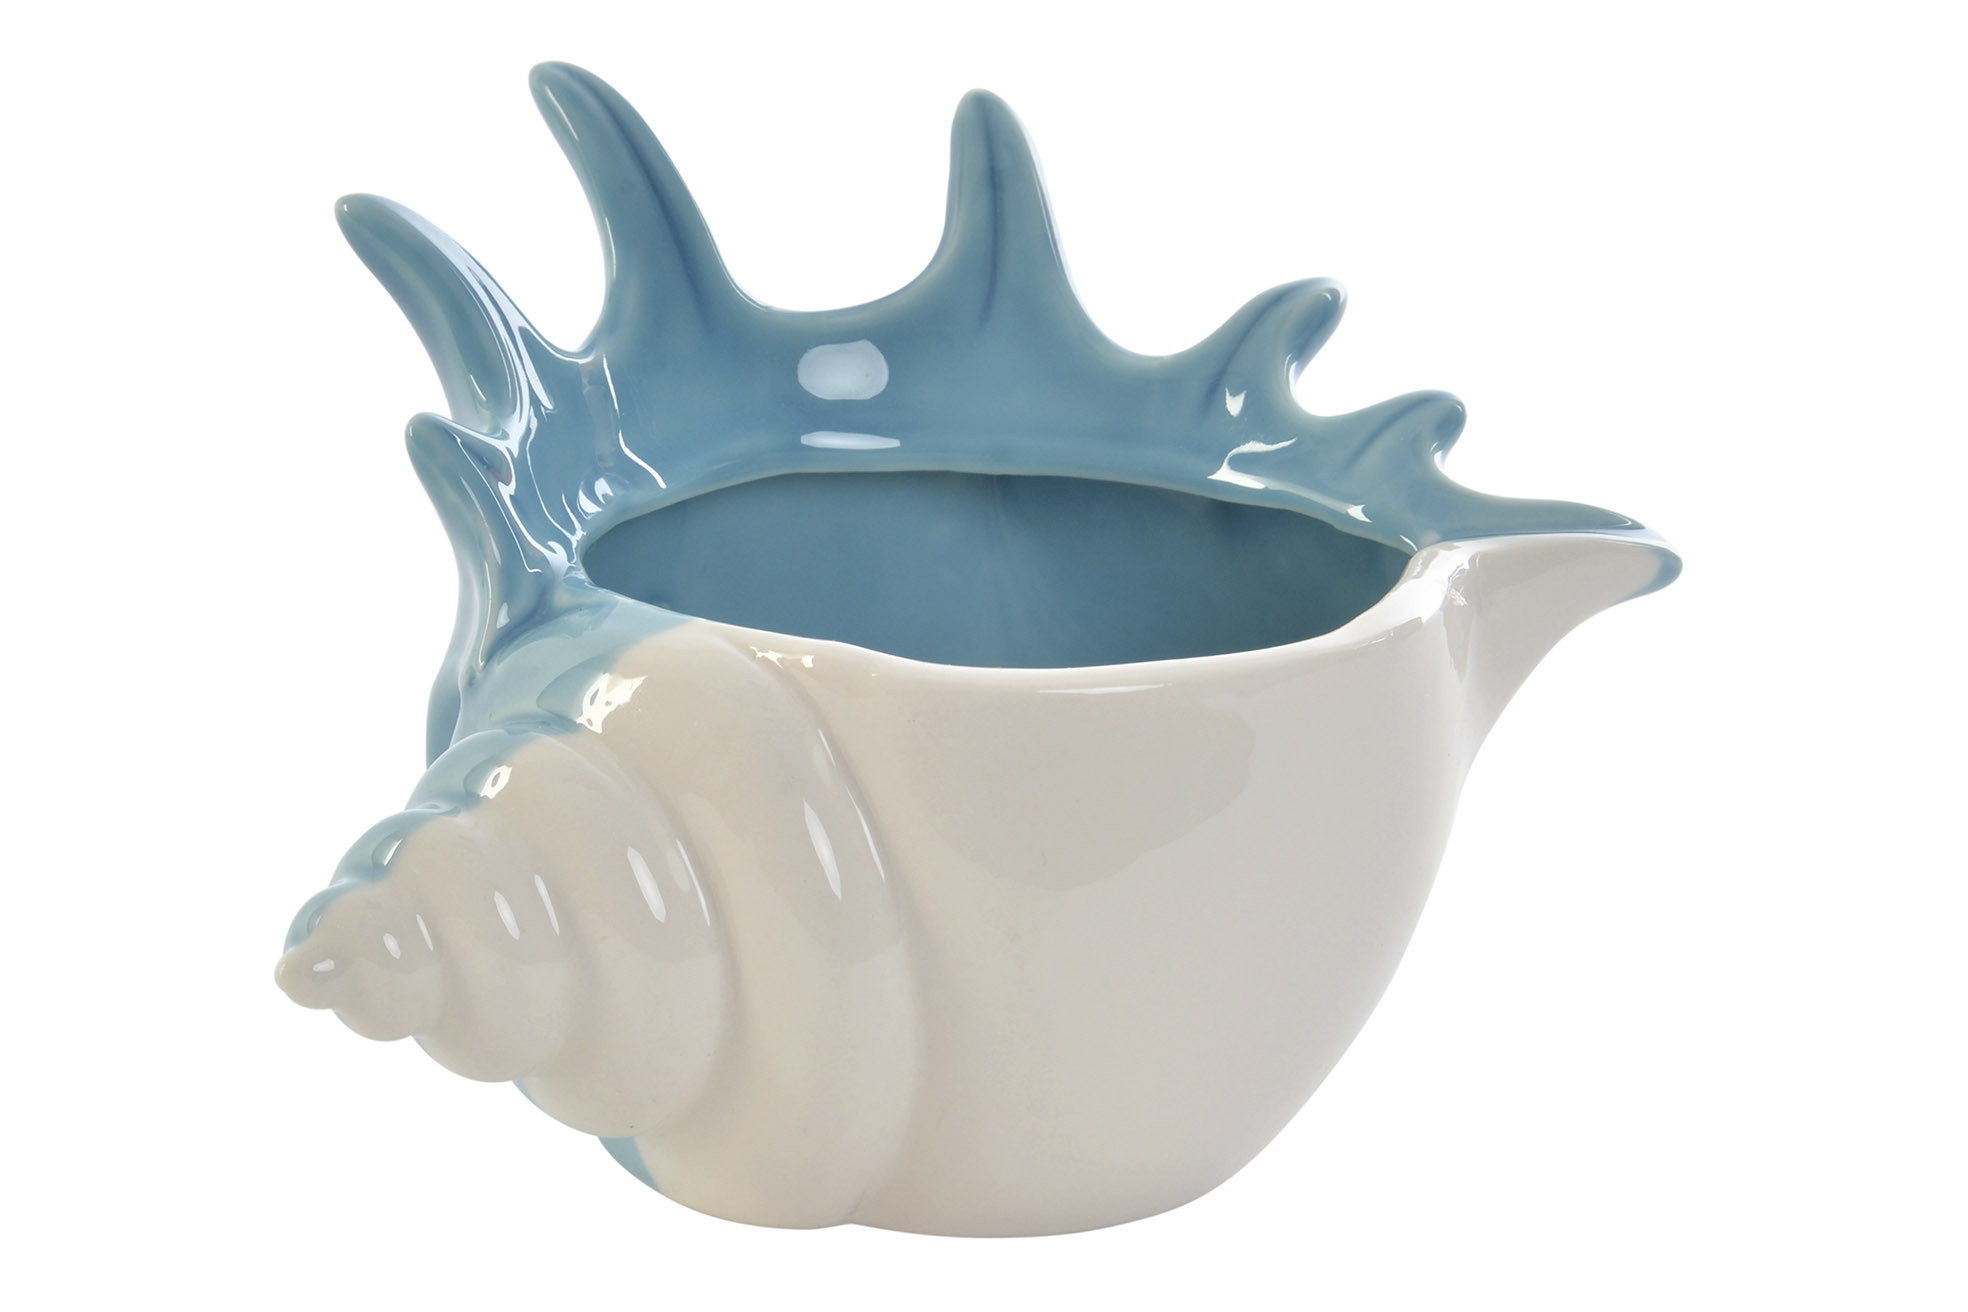 Candle holder Decorative, made in Porcelain, White and Blue. Design of Conch, with Sailor-style - Home and More